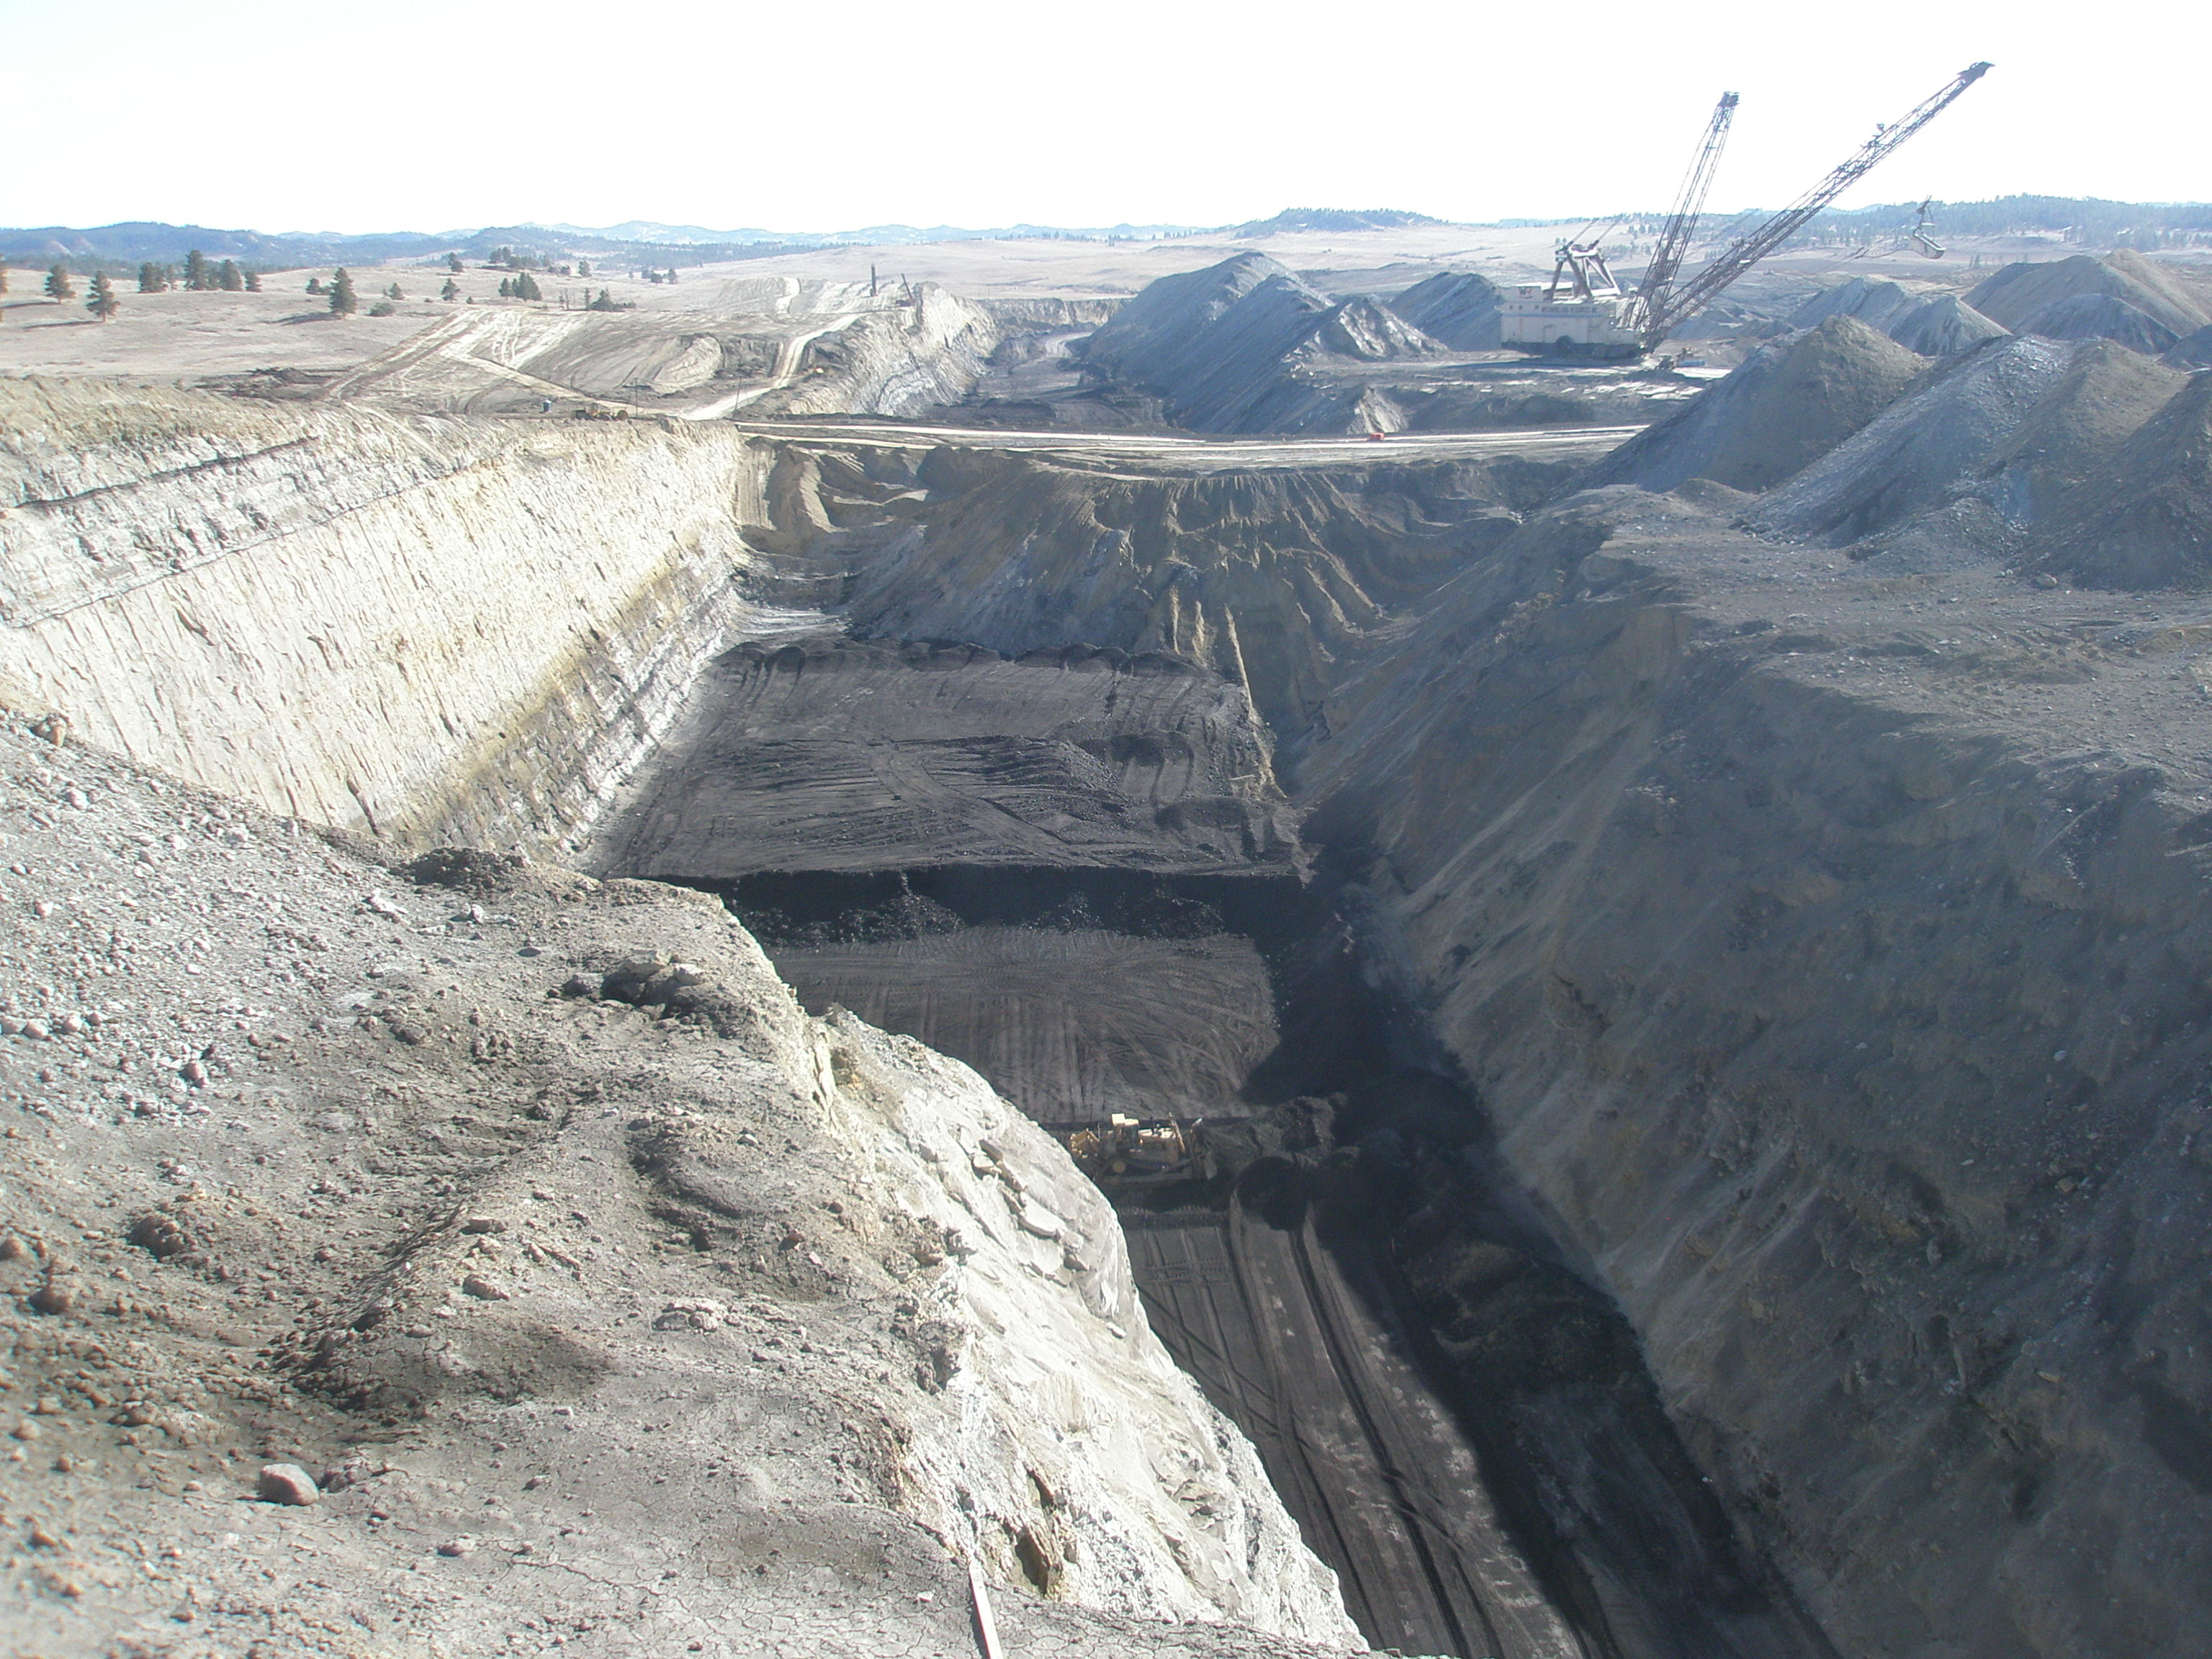 hindu singles in montana mines A central montana coal mine that's seen layoffs, production cuts and permitting troubles faces more uncertainty after one of its co-owners reported taking a $362 million writedown on the.